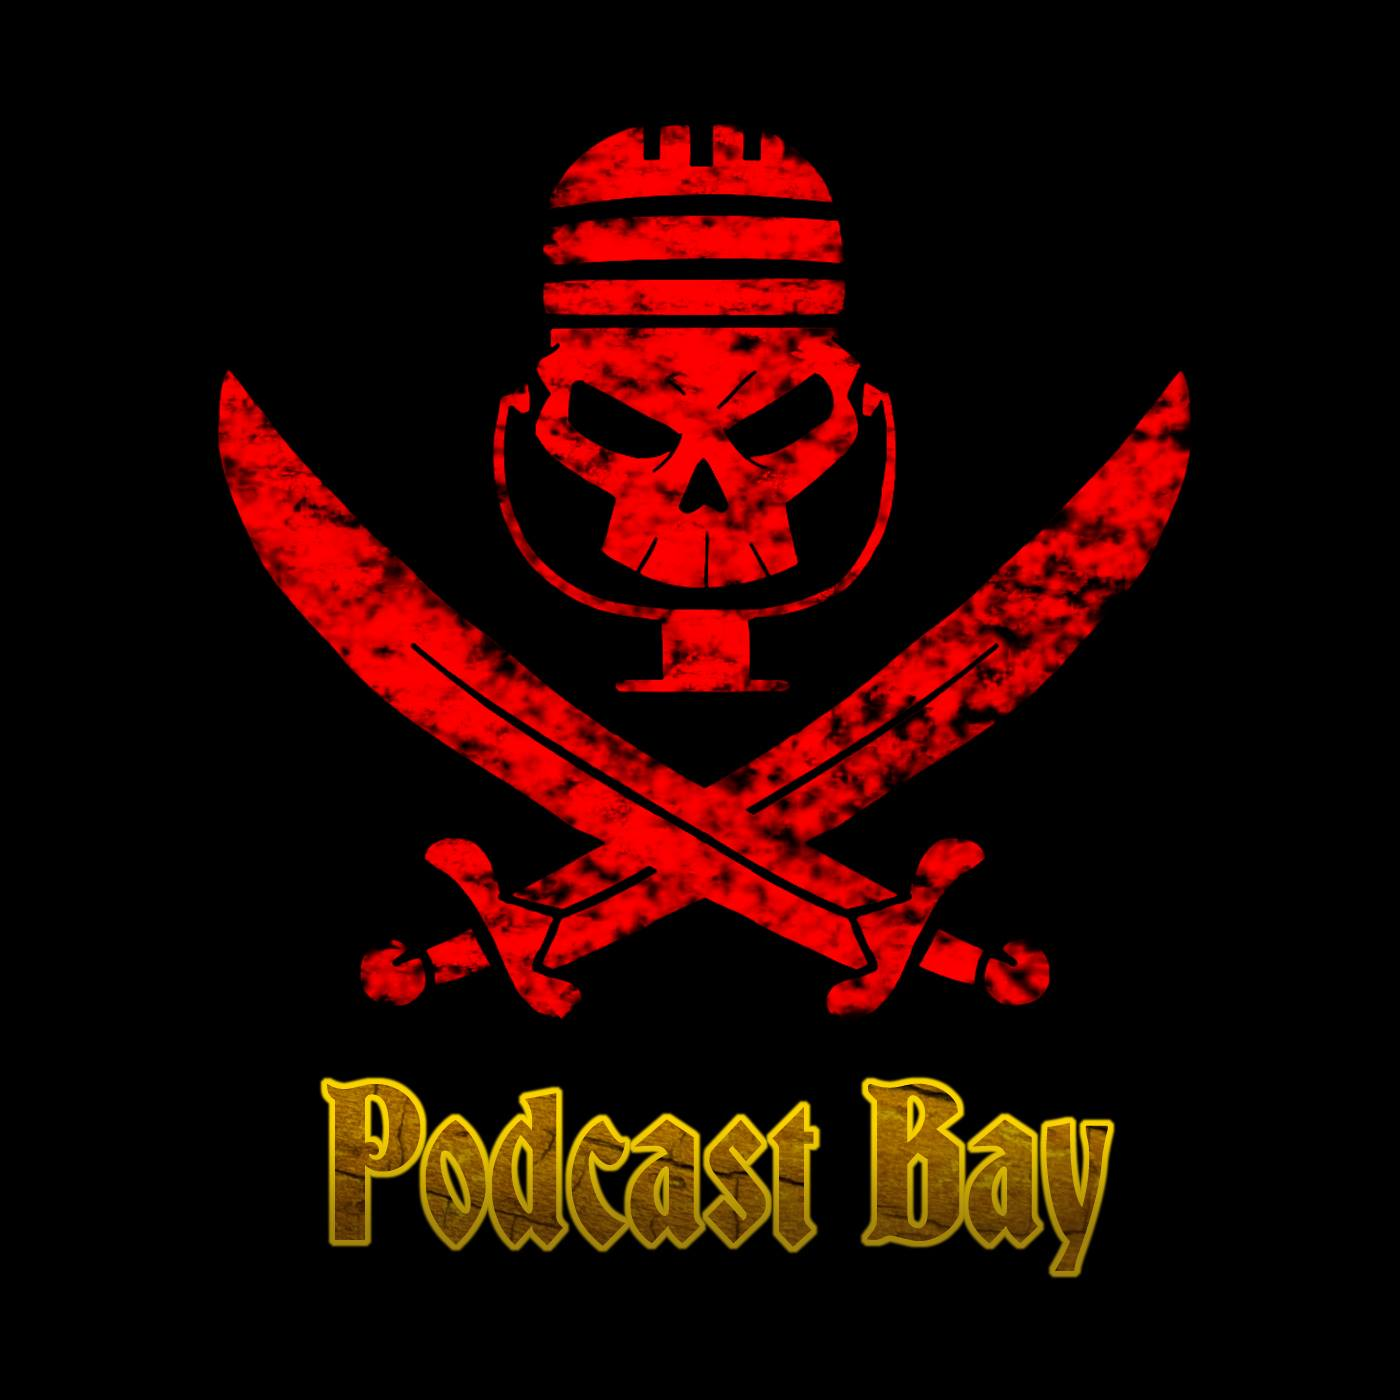 A New Dawn for Podcast Bay